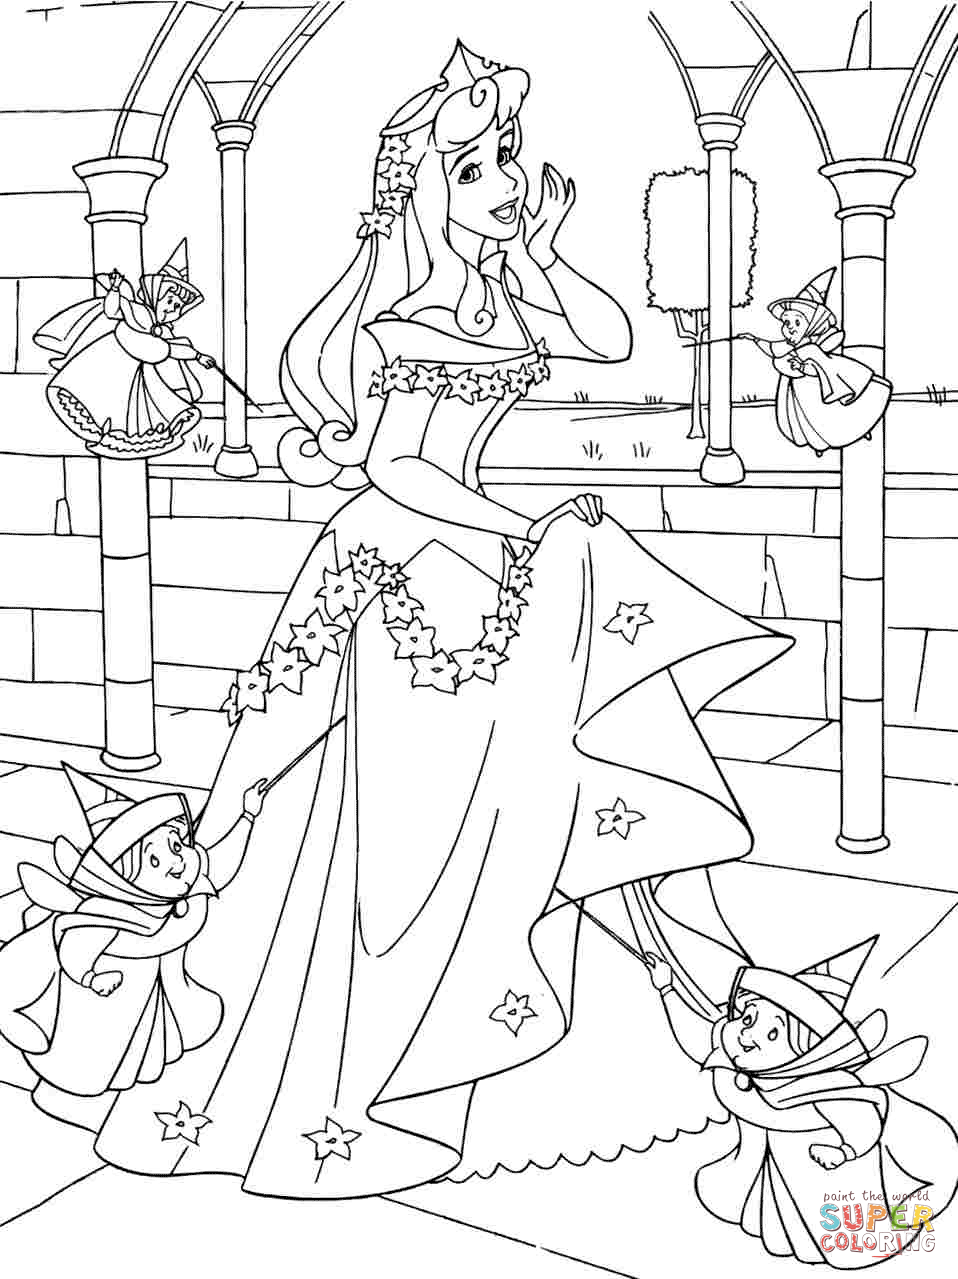 Princess Aurora With Good Fairies Coloring Page Free Printable Coloring Pages